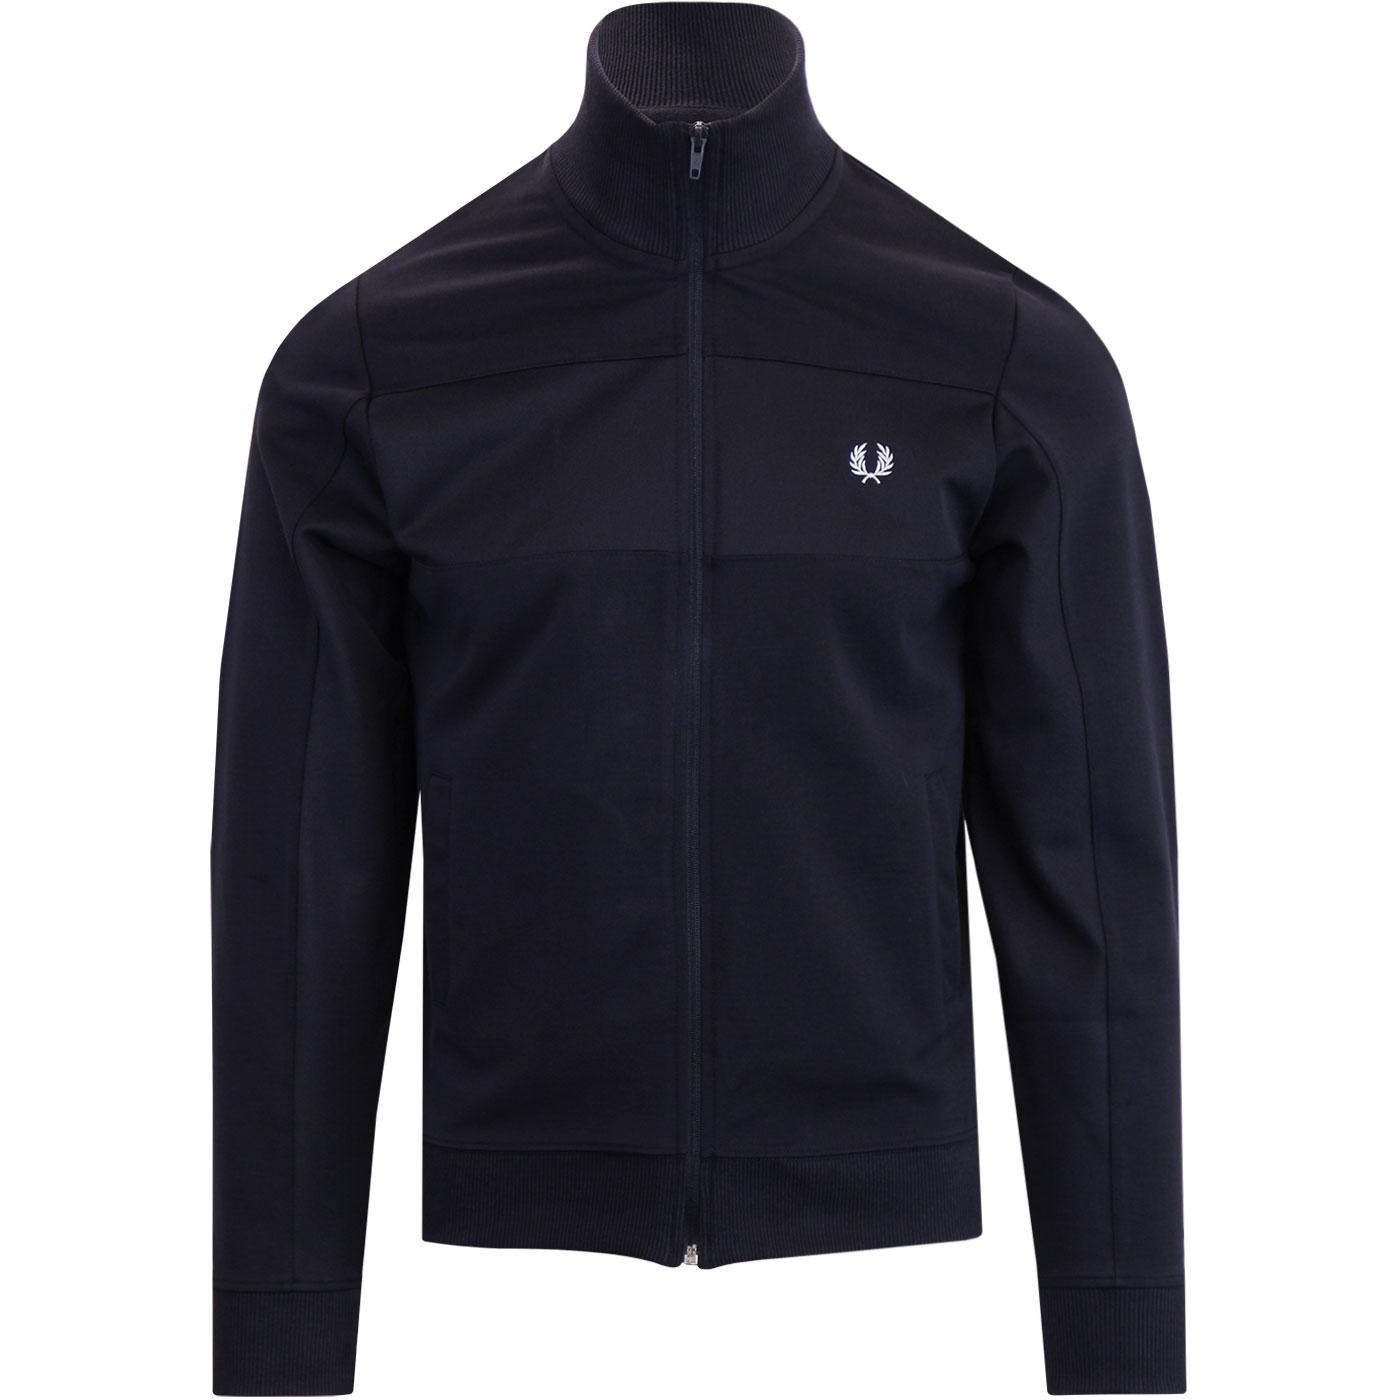 FRED PERRY Men's Retro Funnel Neck Track Jacket